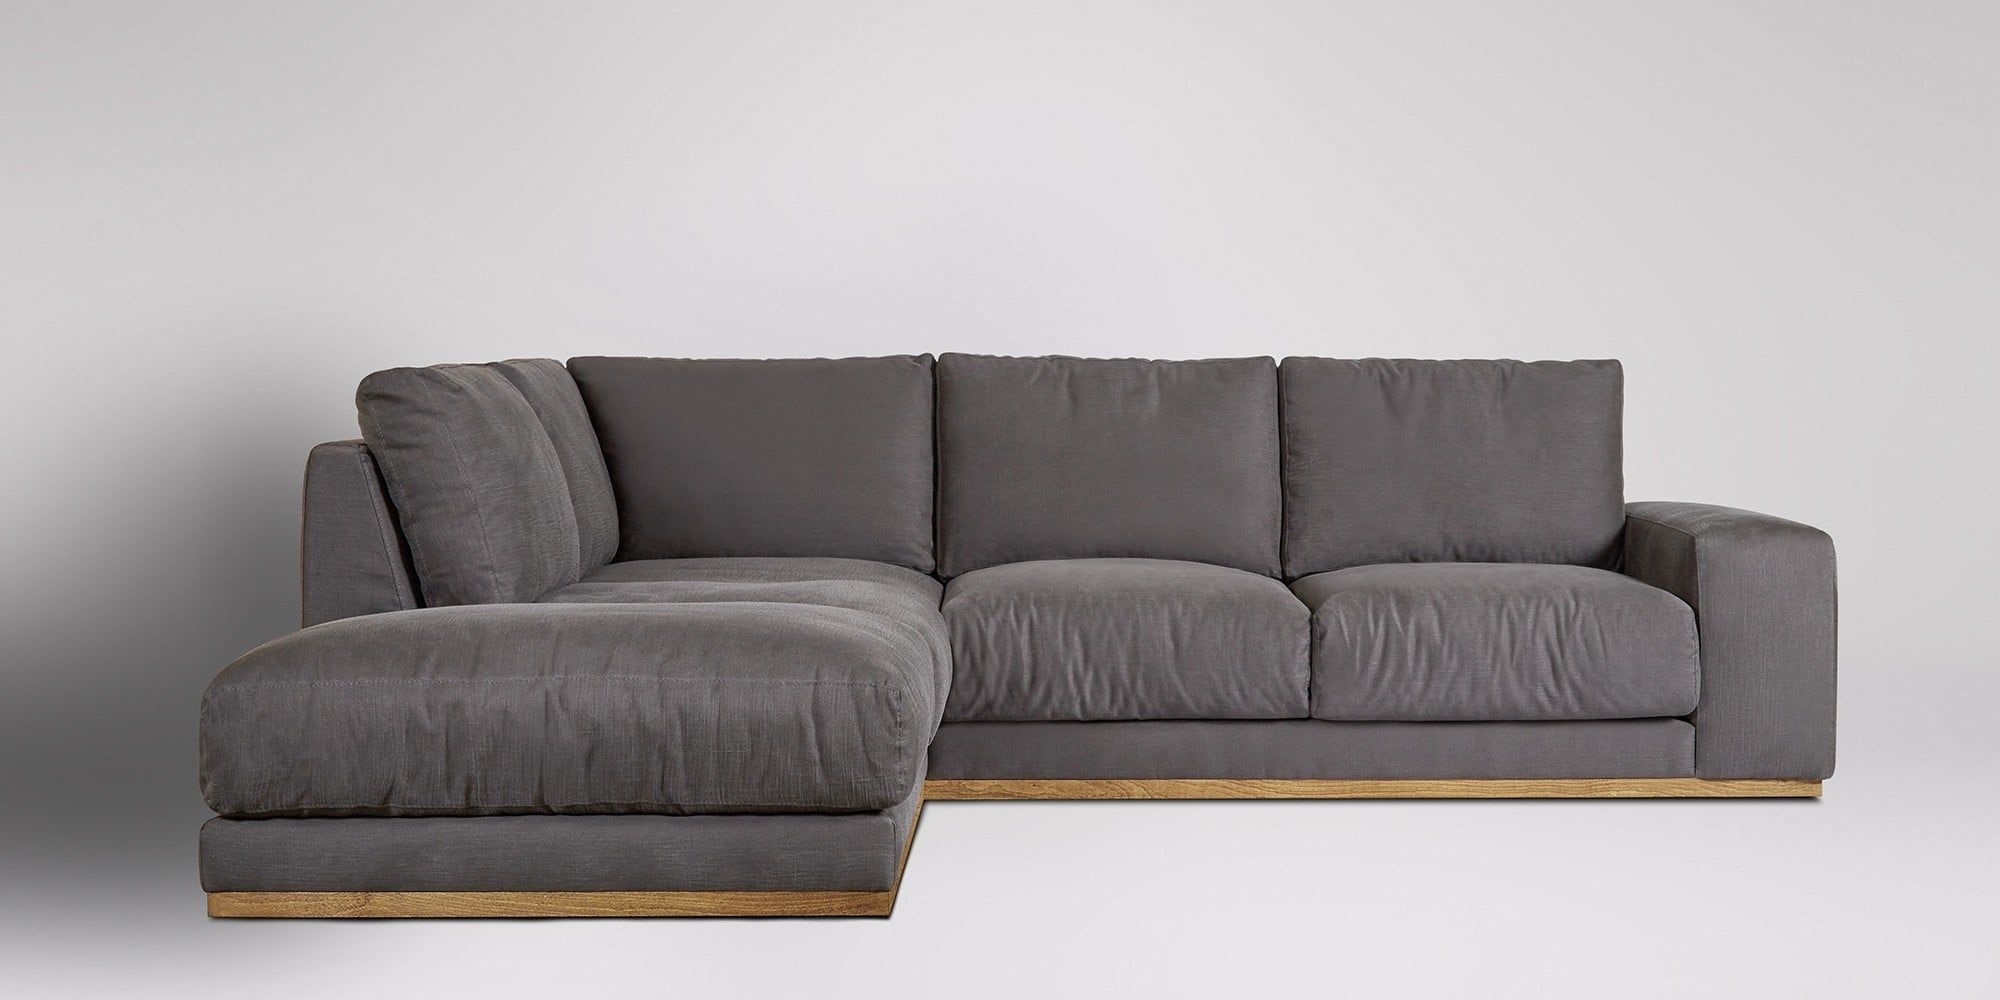 Denver | Corner sofa, Sofa, Home decor